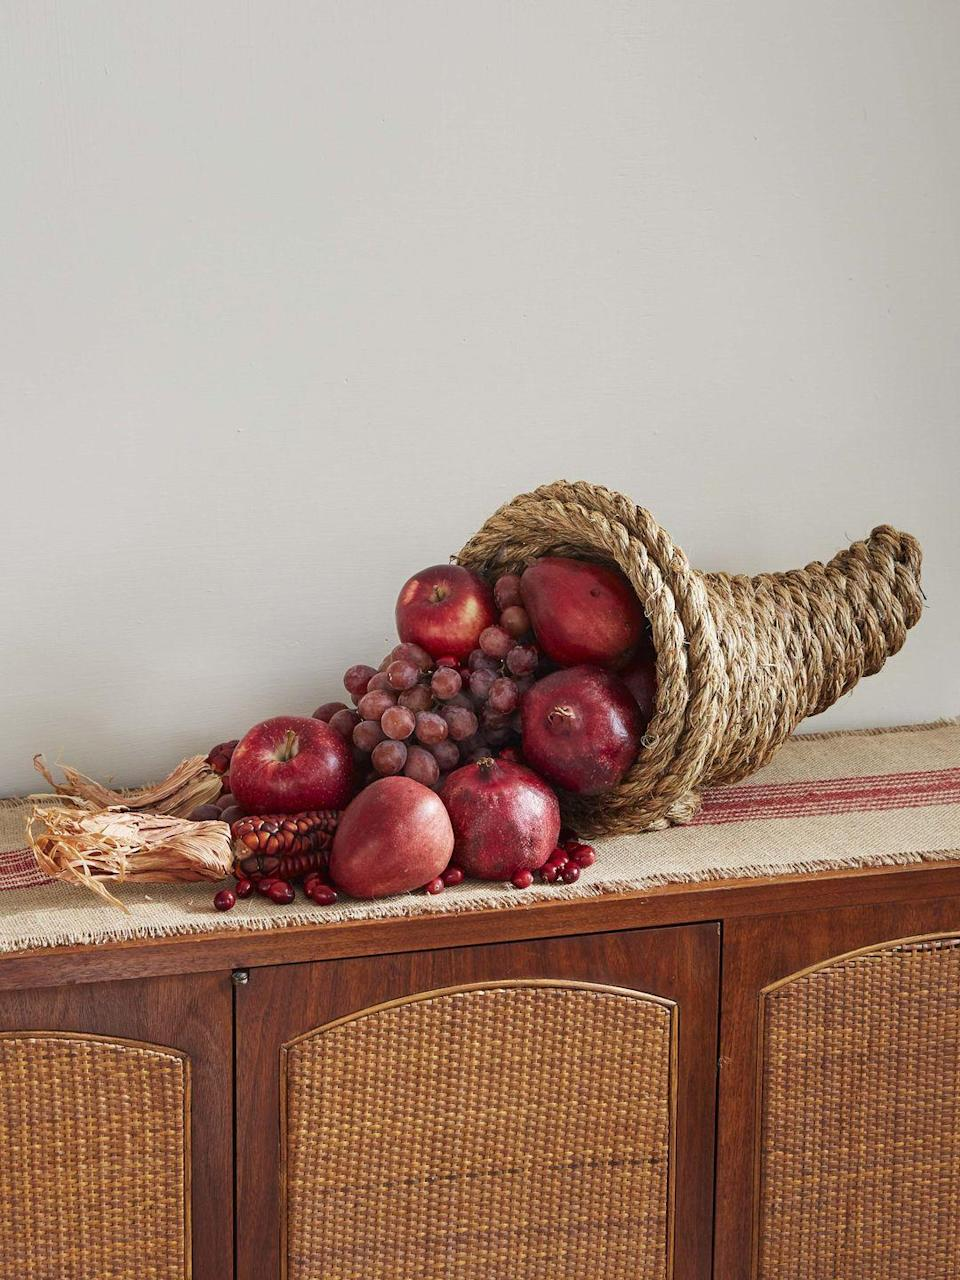 """<p>Fashion a DIY cornucopia out of just 2 materials, rope and hot glue. For a striking display fill with monochromatic bounty such as red grapes and apples, and pomegranates. <strong><br></strong></p><p><strong>To make:</strong> Fold the end of a long length of 3/4-inch manila or jute rope over on itself about 4 inches. Start wrapping the long length of rope around the folded piece, forming the cornucopia, arching it and making it wider as you work, holding everything together with hot glue. When you get to the desired size, do one last pass between and on top of the last two rows then add a circle of rope on the bottom to act as a base and keep it from rolling.</p><p><a class=""""link rapid-noclick-resp"""" href=""""https://www.amazon.com/Twisted-Manila-Rope-Hemp-Landscaping/dp/B01J07102A/ref=sr_1_13?linkCode=ogi&tag=syn-yahoo-20&ascsubtag=%5Bartid%7C10050.g.2063%5Bsrc%7Cyahoo-us"""" rel=""""nofollow noopener"""" target=""""_blank"""" data-ylk=""""slk:SHOP ROPE"""">SHOP ROPE</a></p>"""